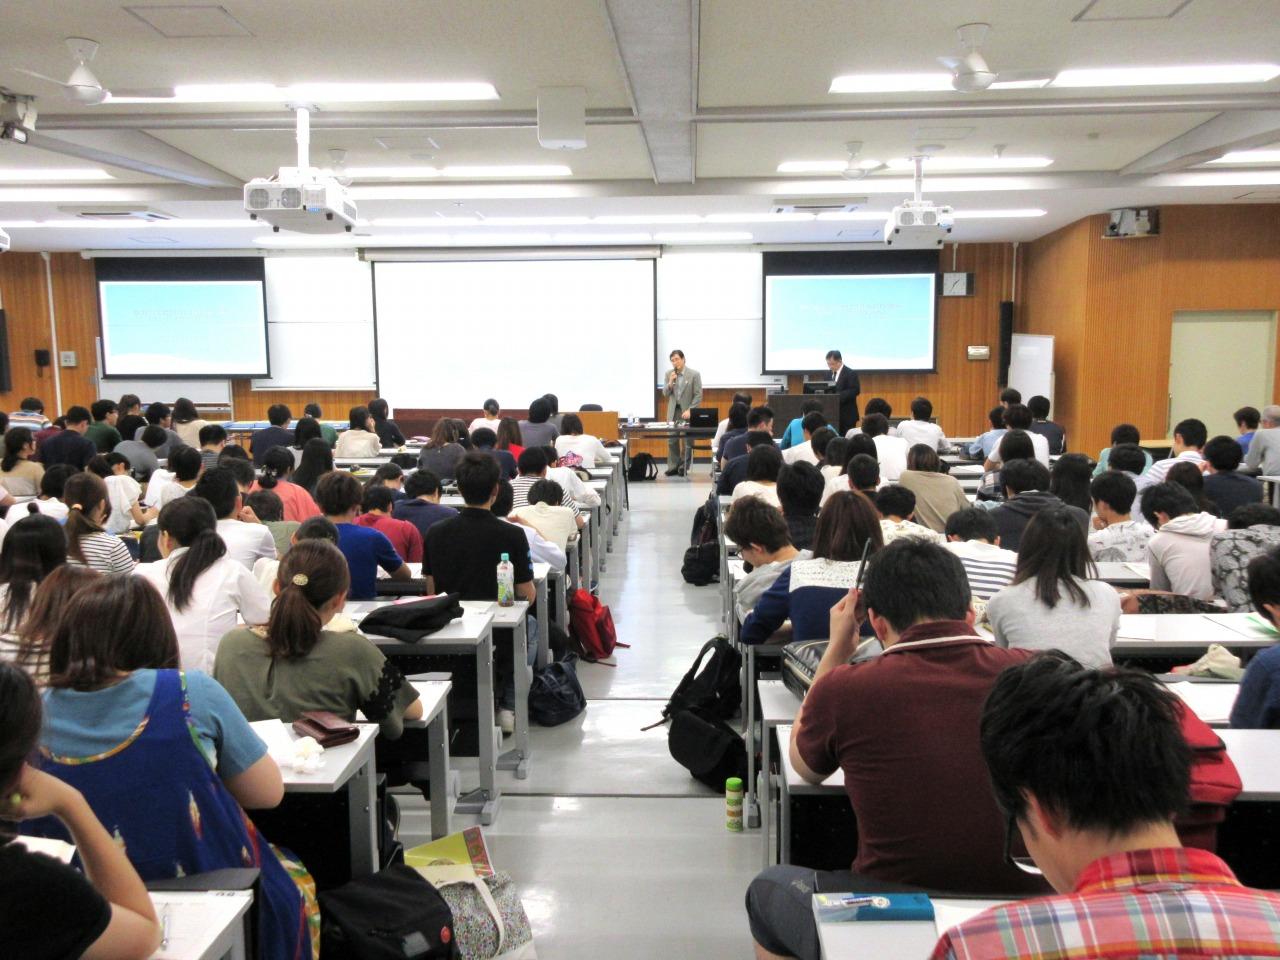 http://www.shinshu-u.ac.jp/faculty/econlaw/topics/images/s-IMG_0879.jpg